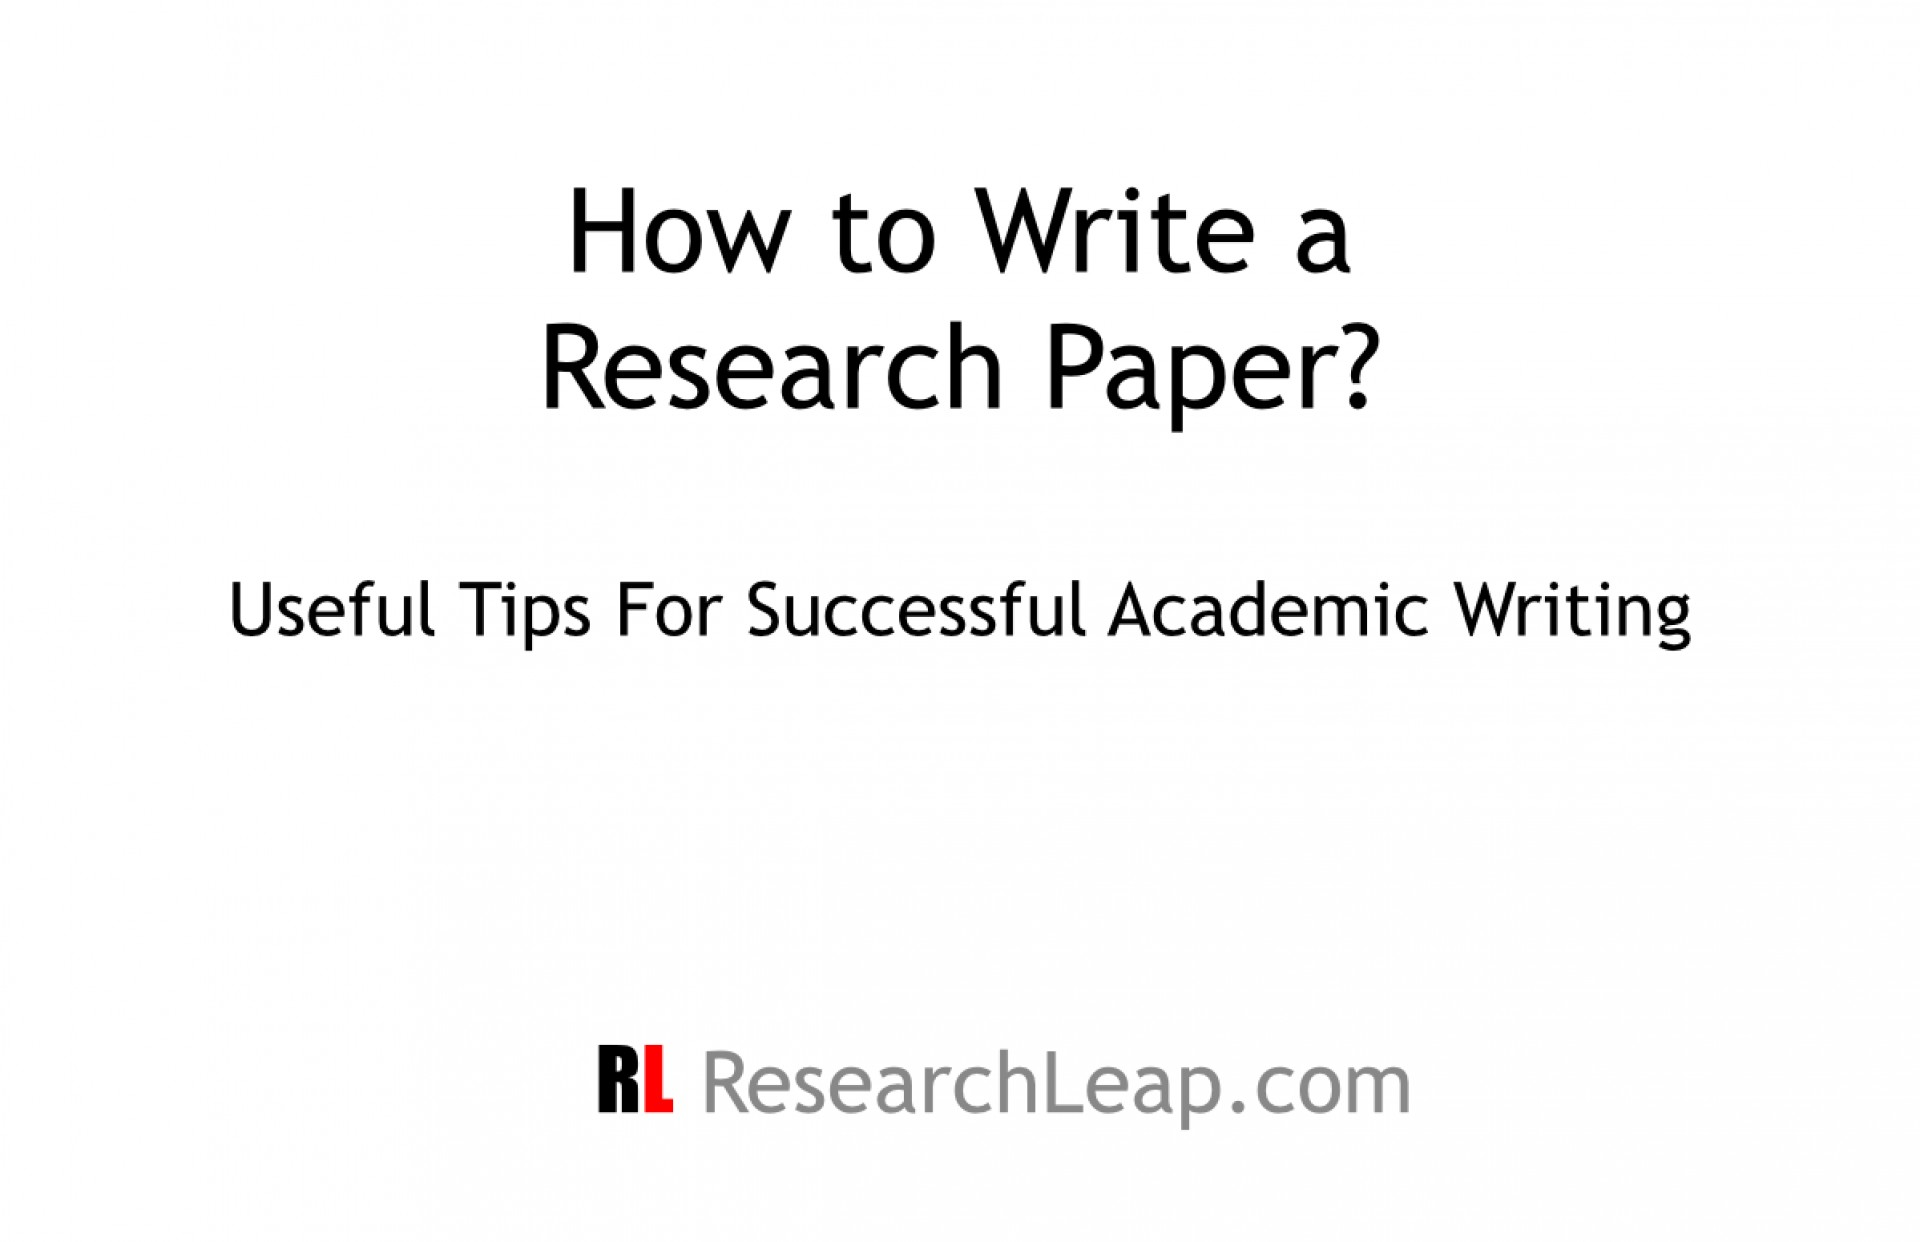 015 Tips For Writing Researchs Ppt Entering Unforgettable Research Papers Apa Paper 1920